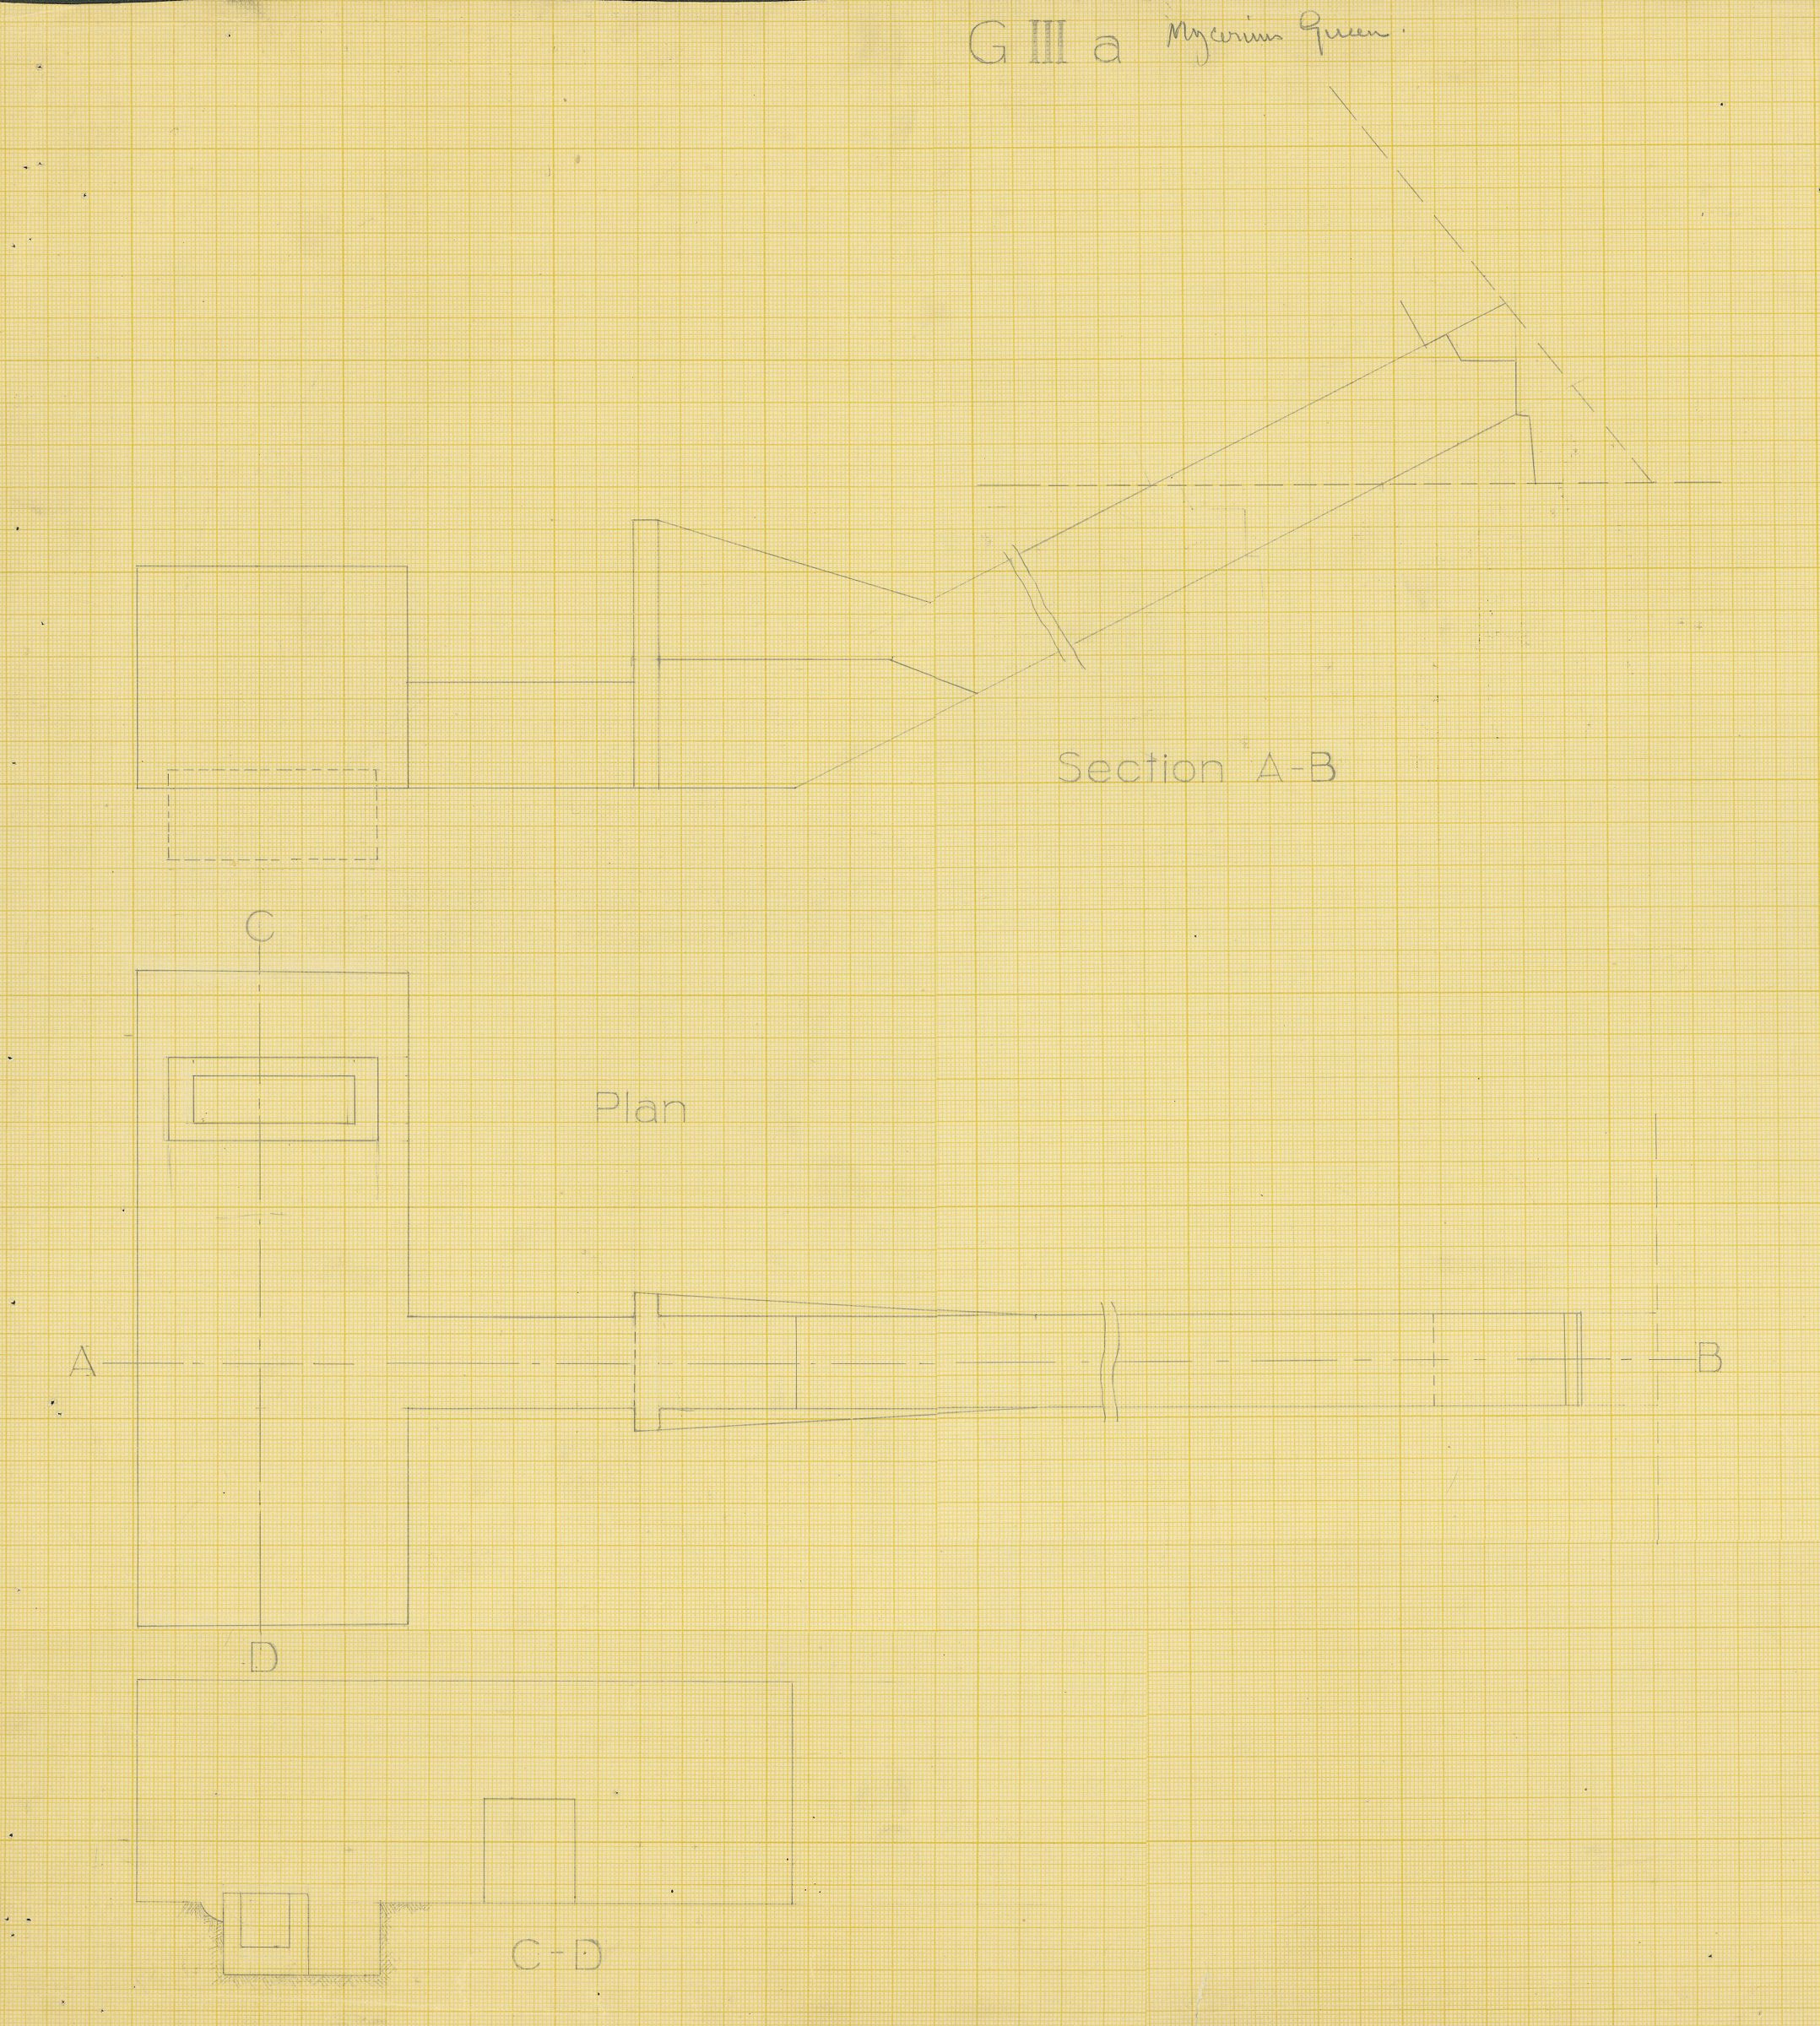 Drawings: G III-c, Plan and sections of chamber